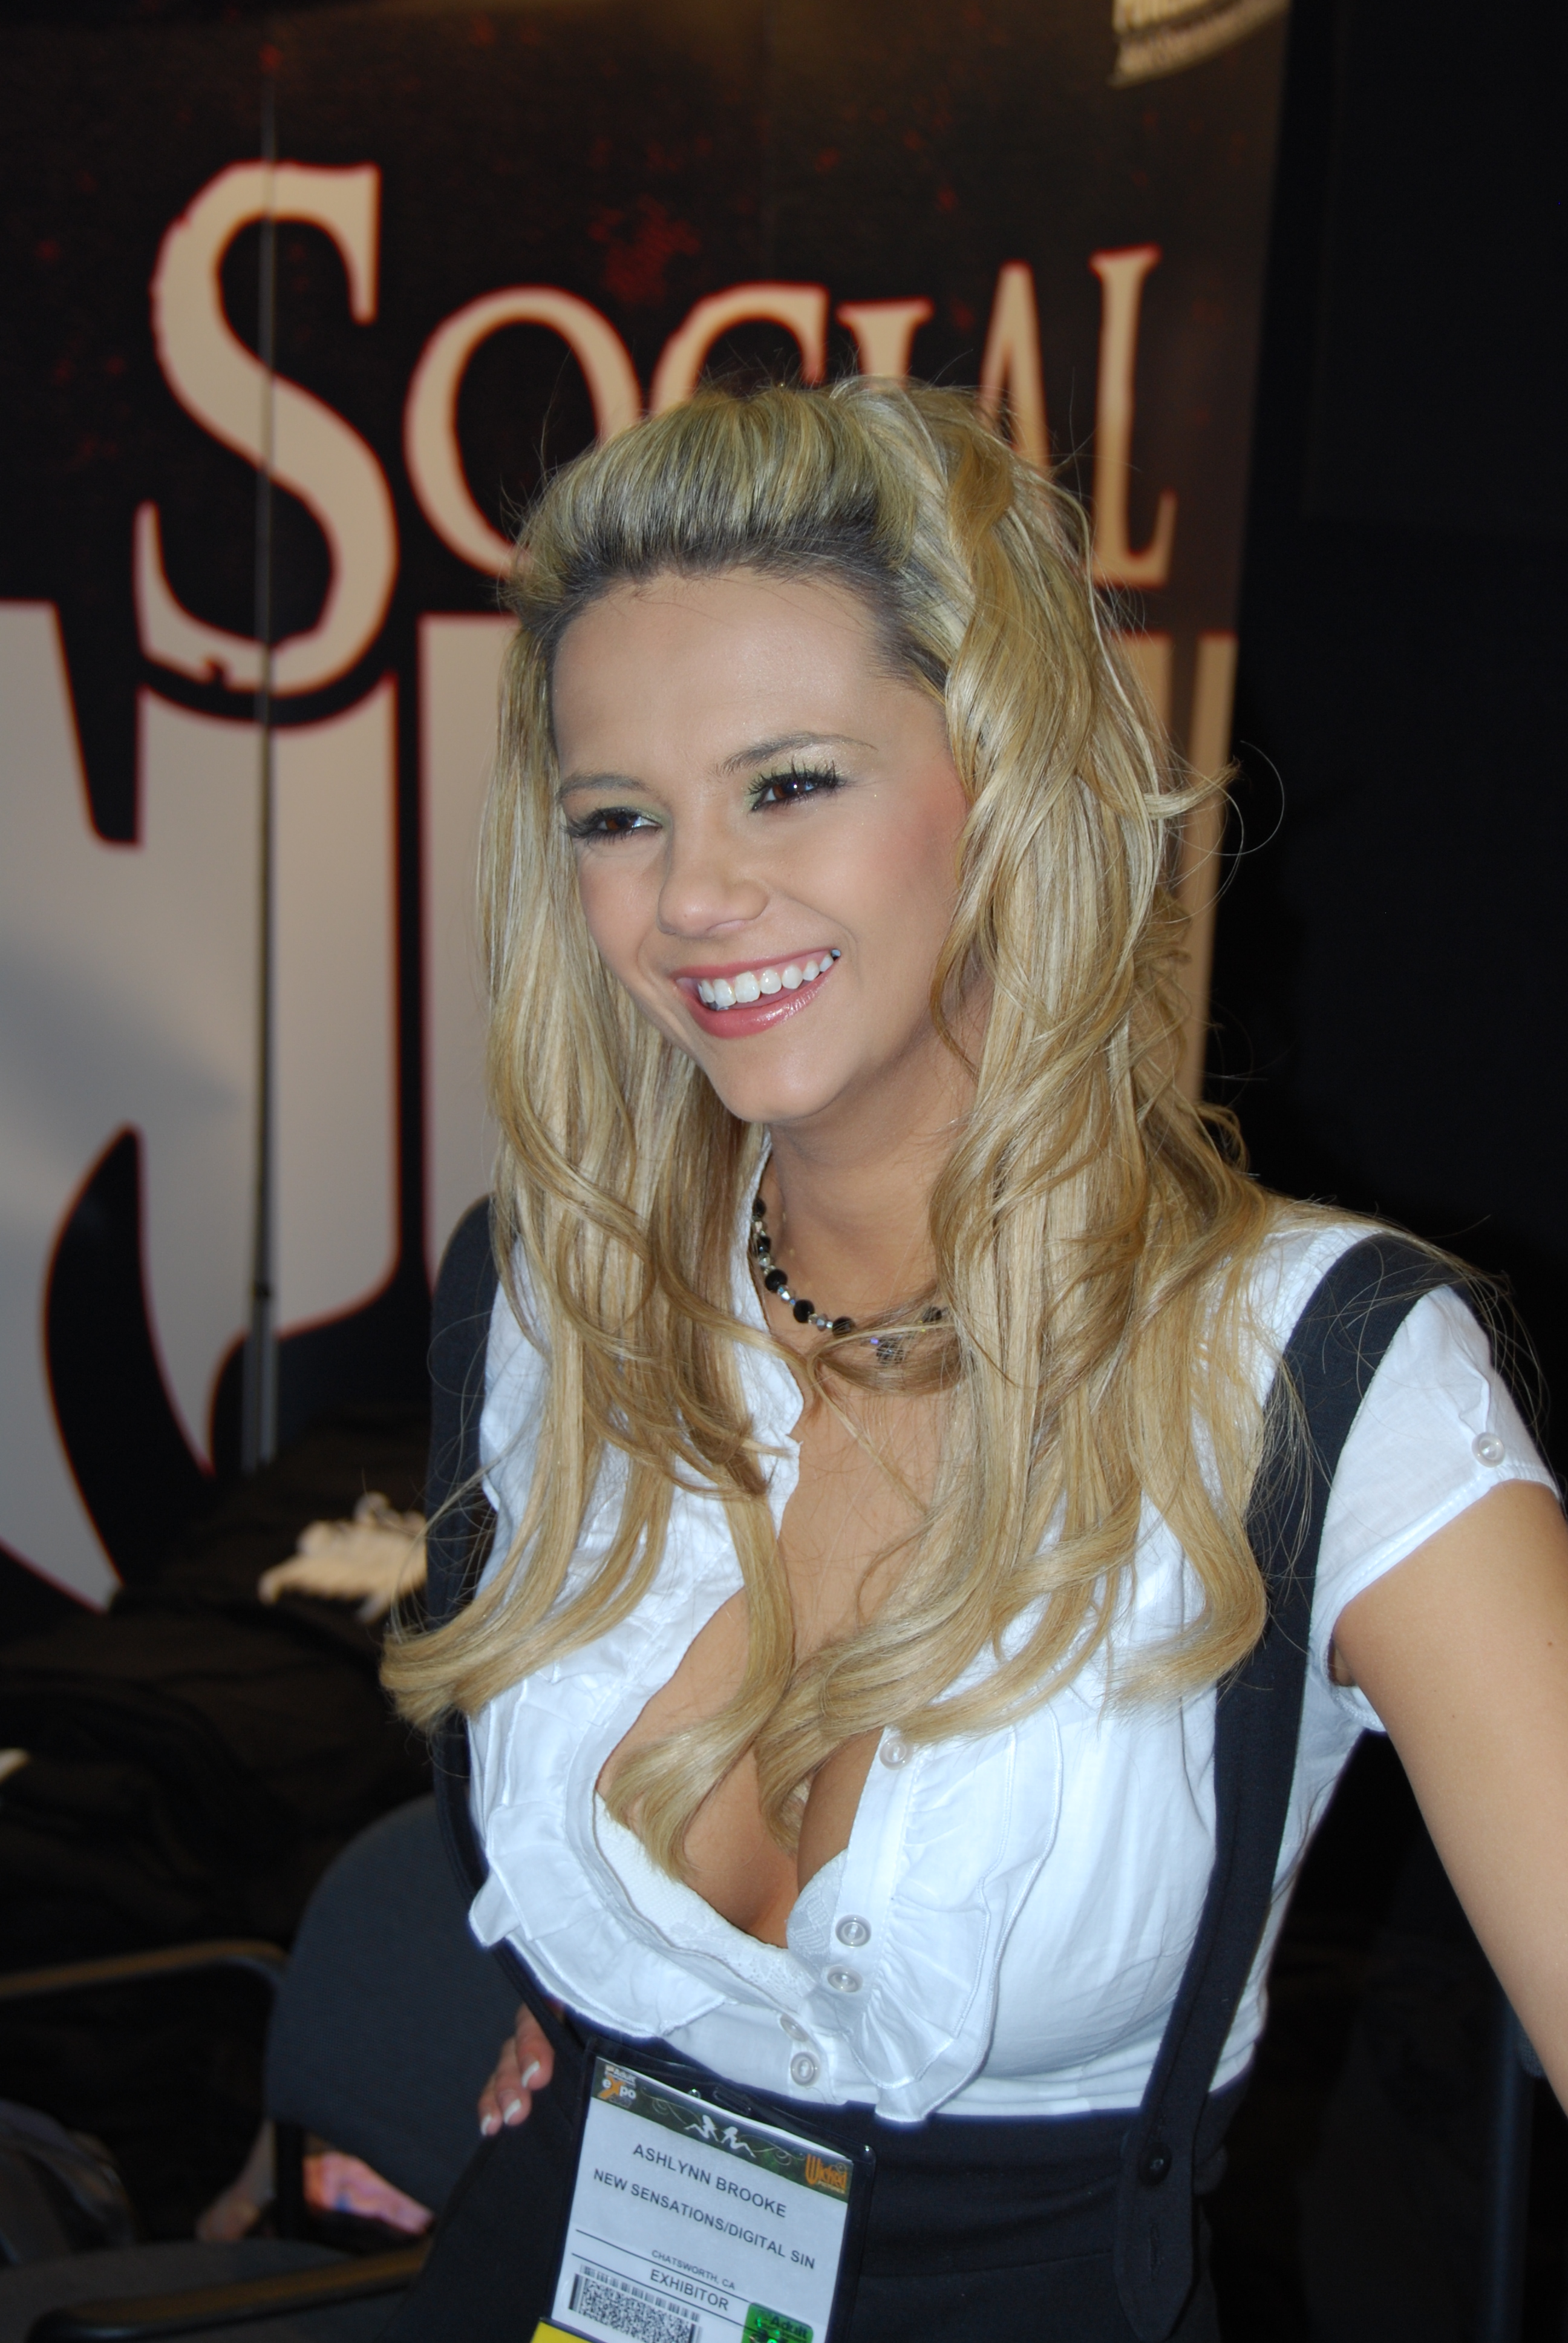 Fileashlynn Brooke At Avn Adult Entertainment Expo 2008 2 Jpg